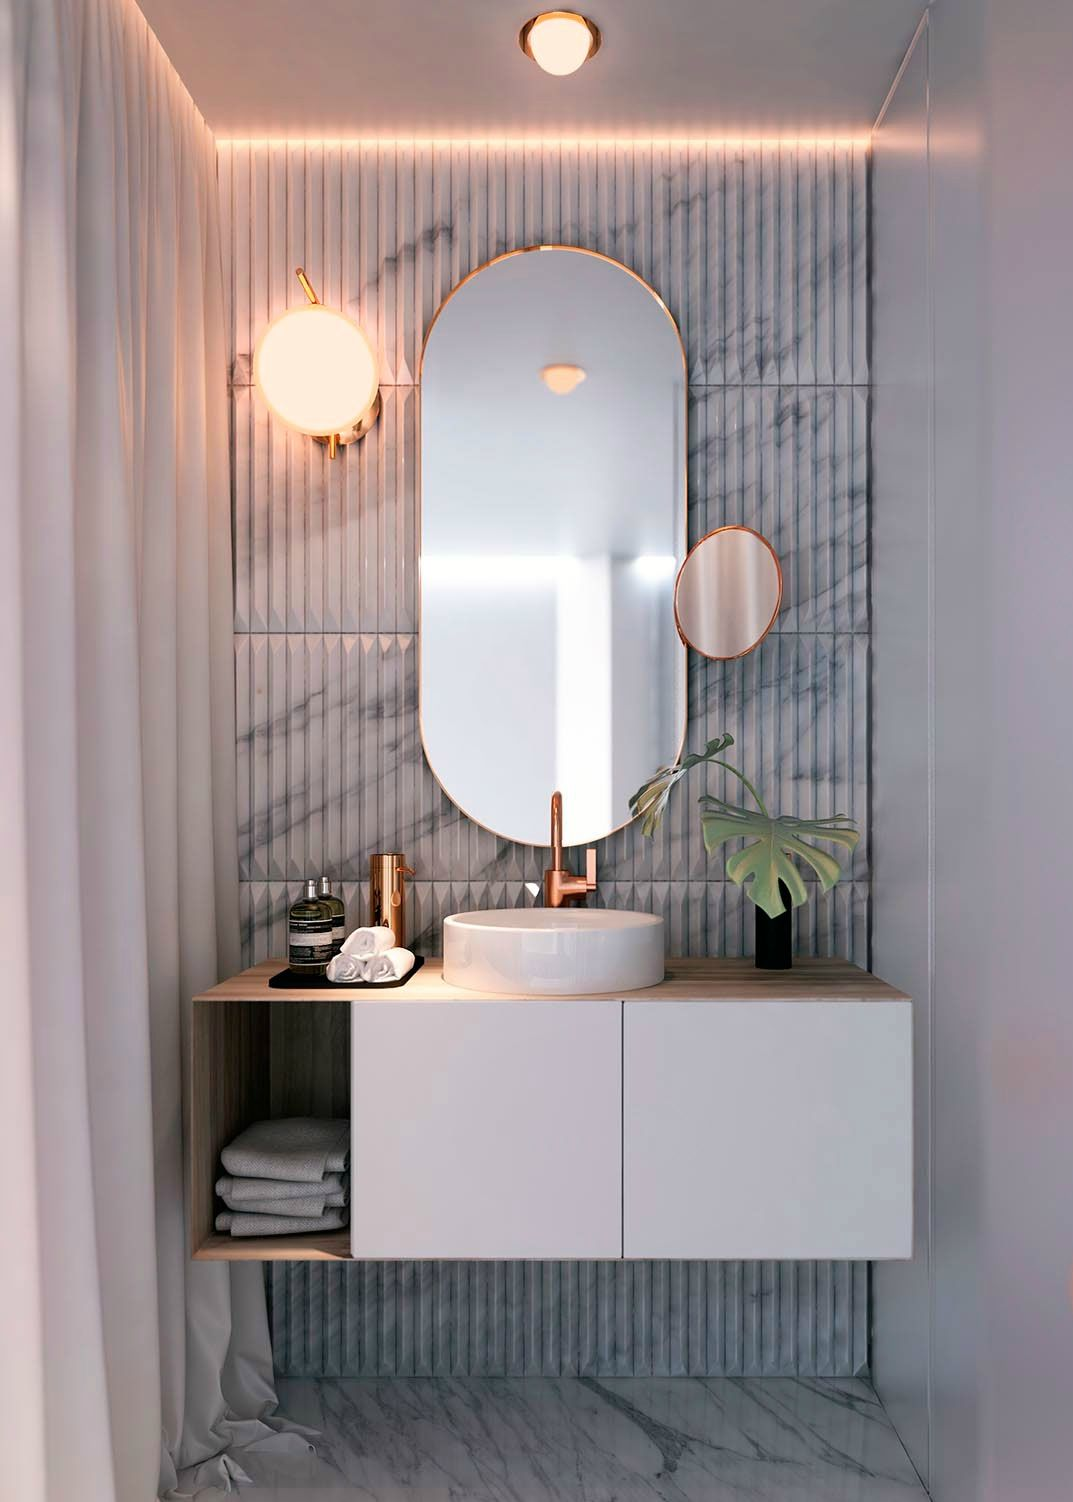 on tingalpa fans of unique images bathroom appliances pinterest best hd luxbathrooms electrical